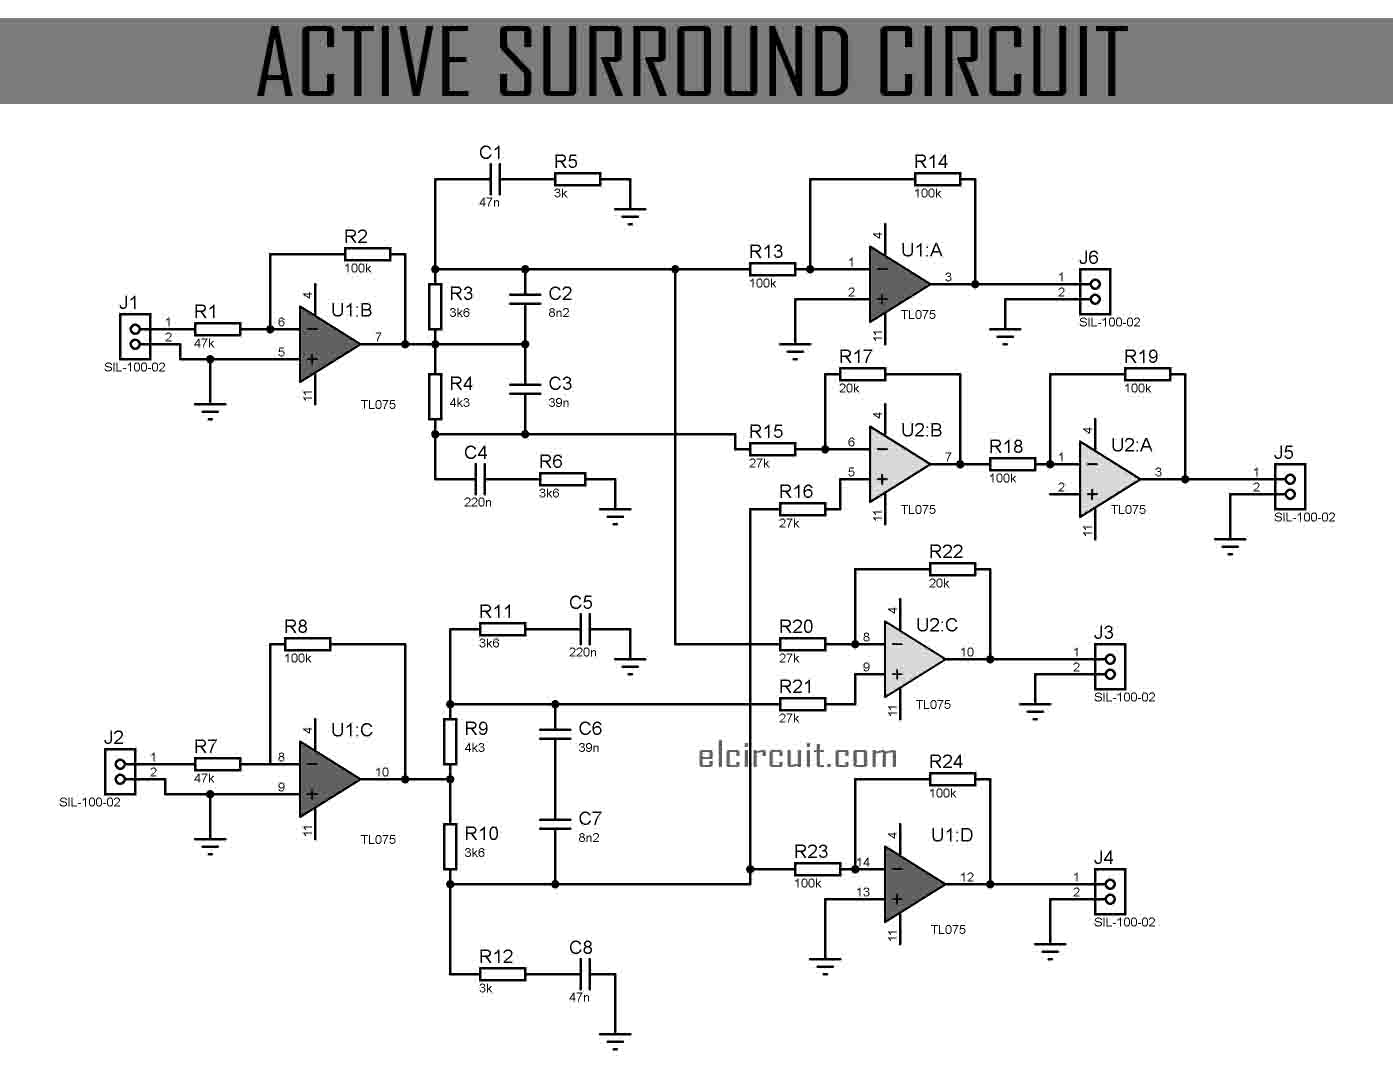 small resolution of below the active surround sound circuit diagram include regulated power supply 12v